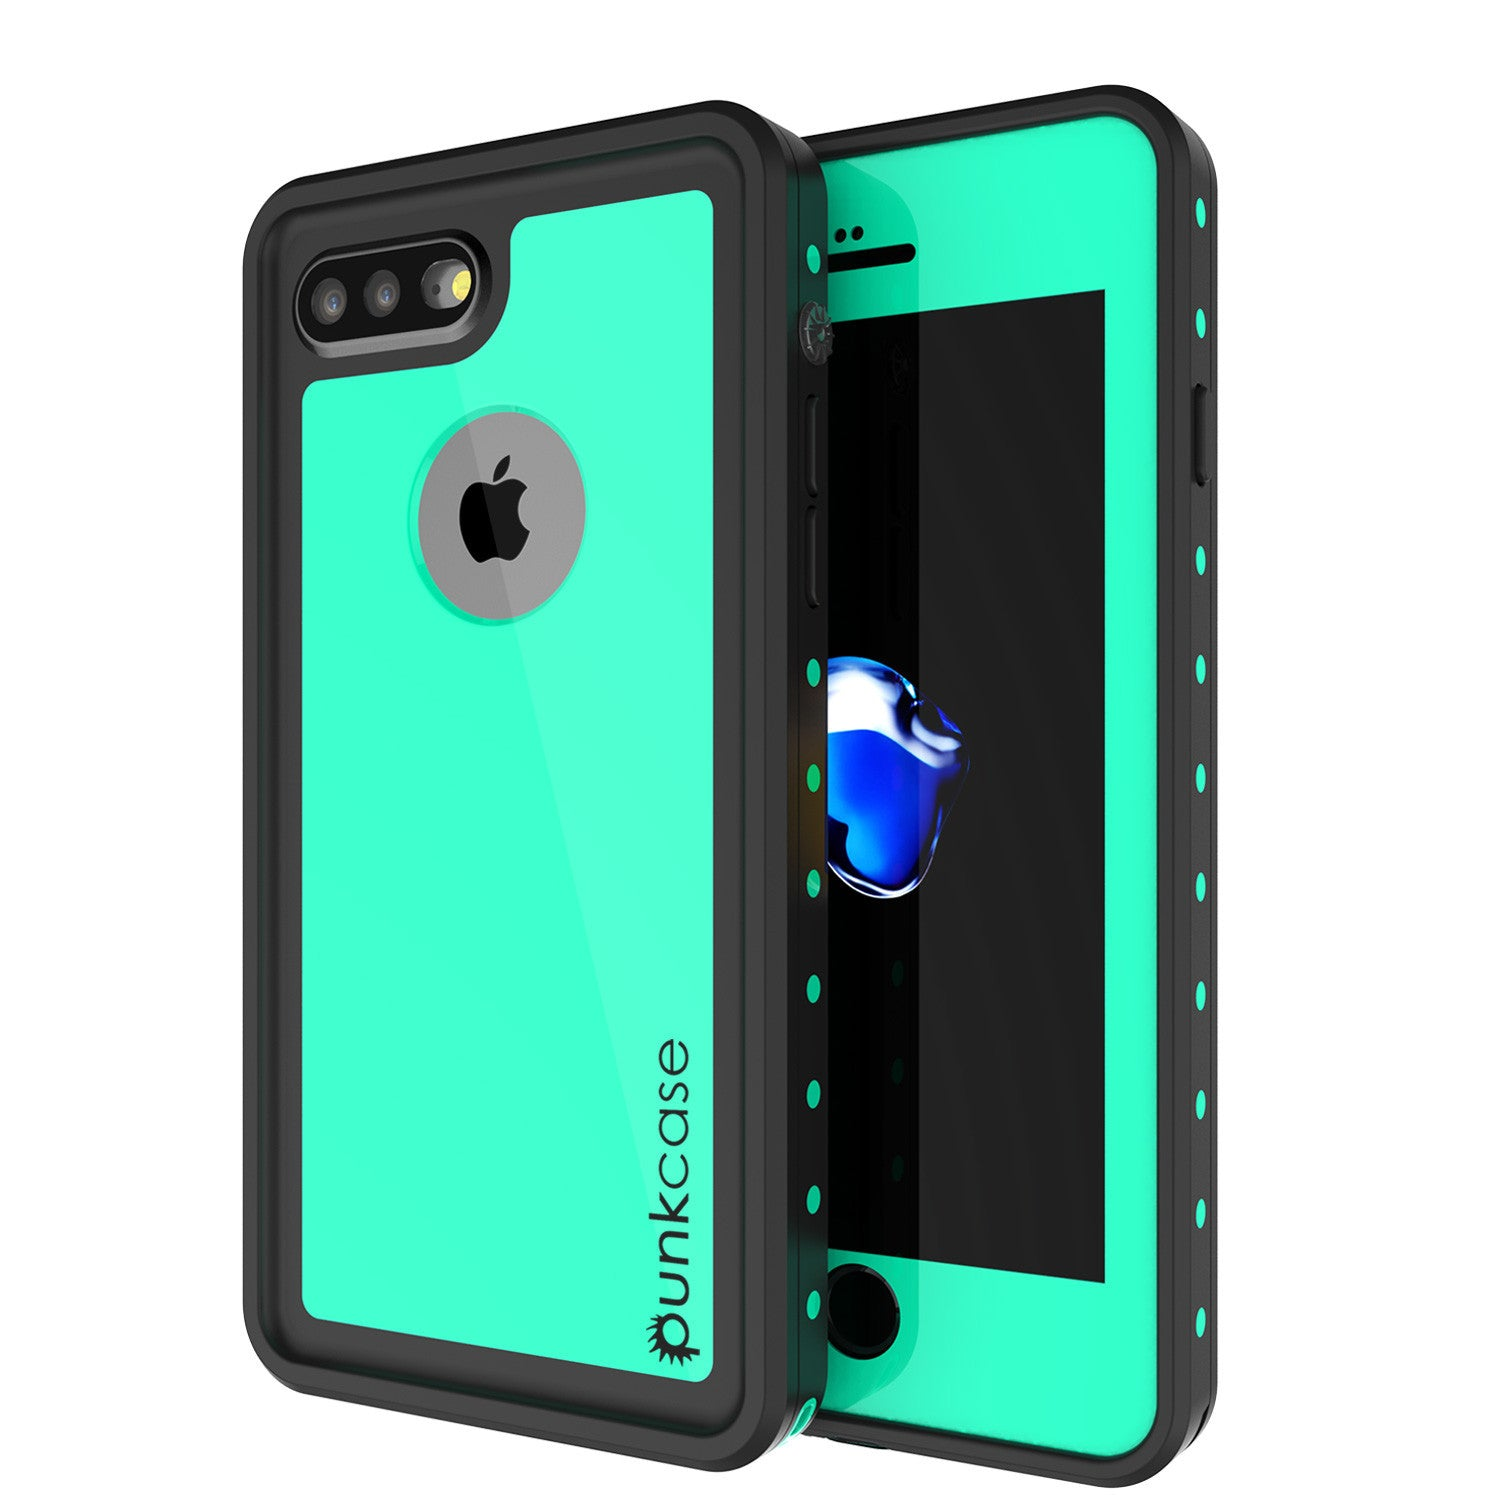 iPhone 8+ Plus Waterproof Case, Punkcase [StudStar Series] [Teal] [Slim Fit] Shockproof] [Dirtproof] [Snowproof] Armor Cover